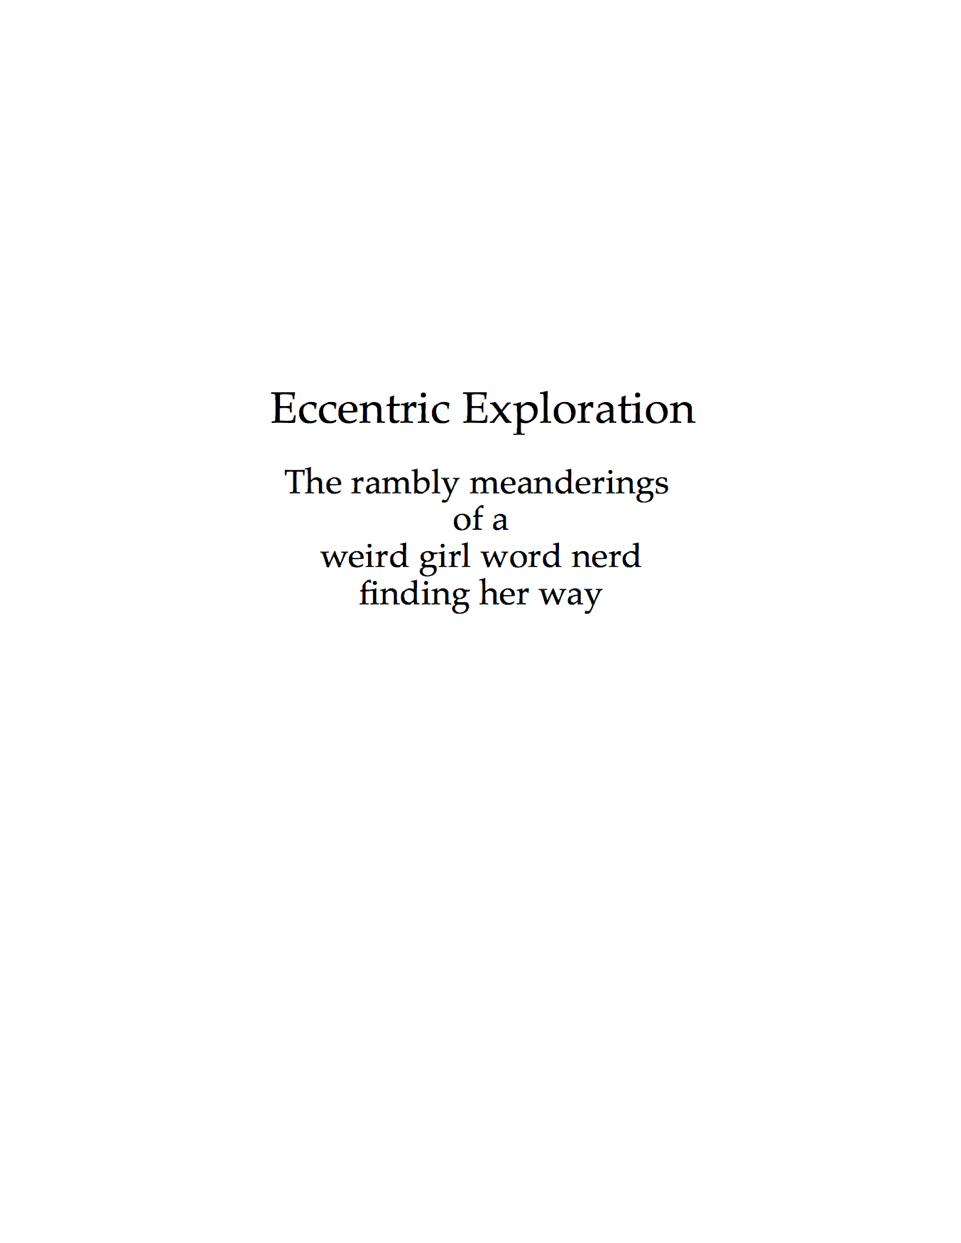 Eccentric Exploration